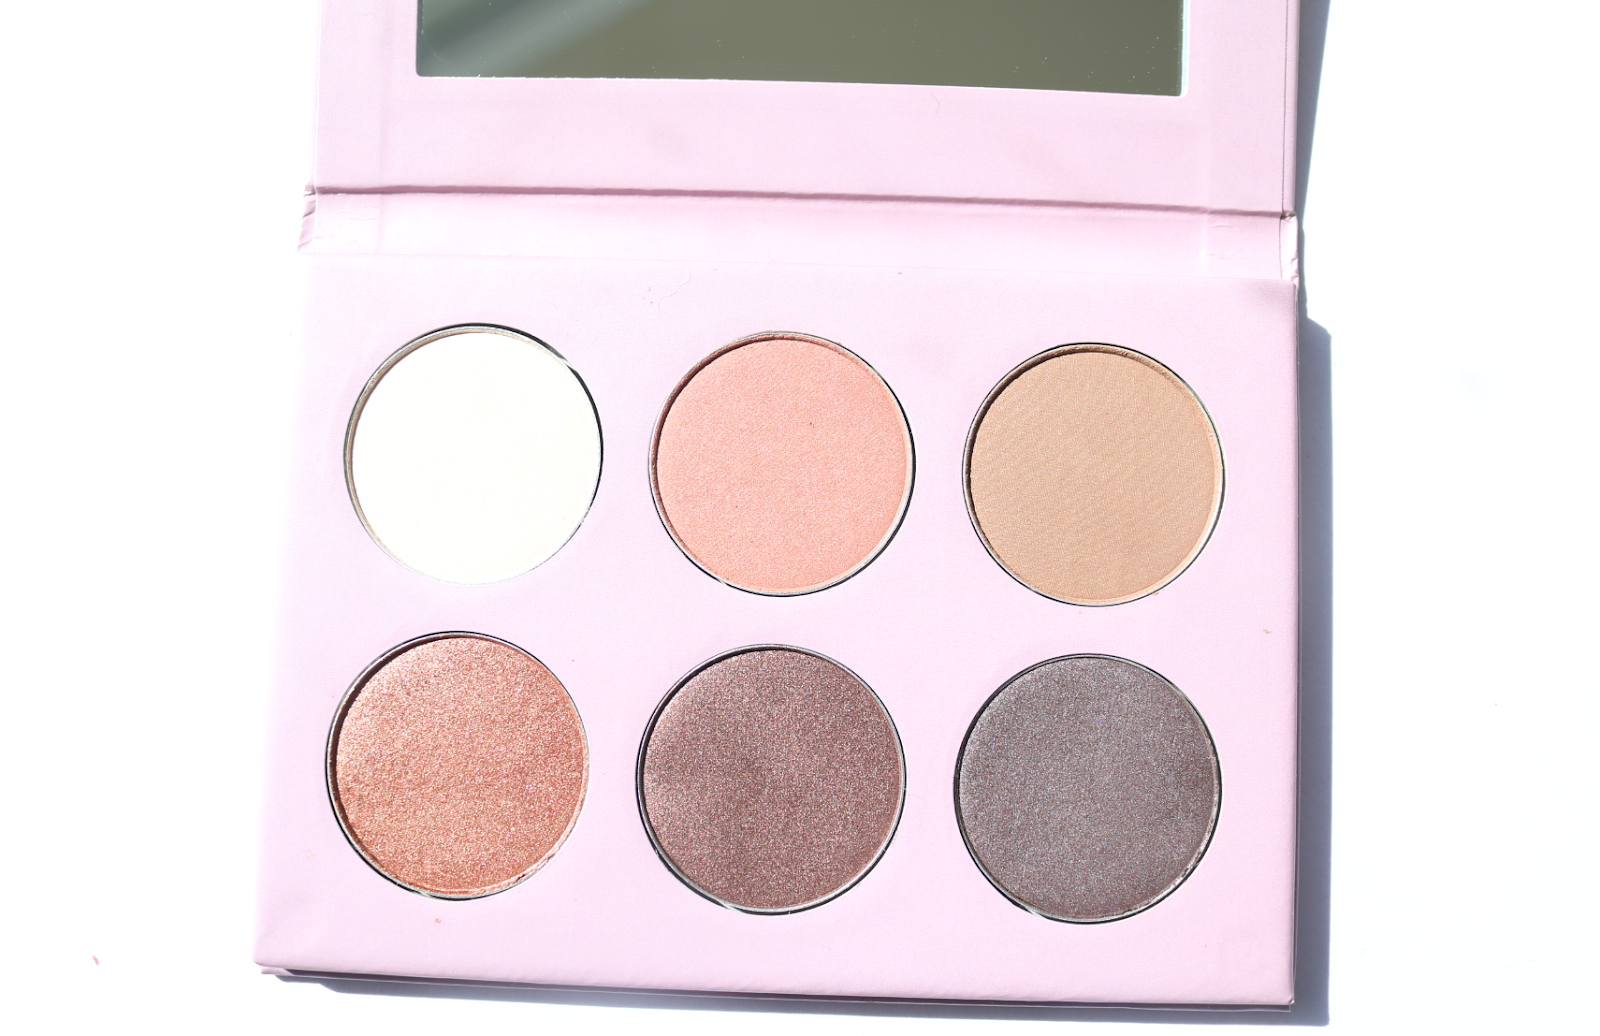 Lavera Limited Edition Natural Pastels Mineral Eyeshadow Palette in Blooming Nude review swatches